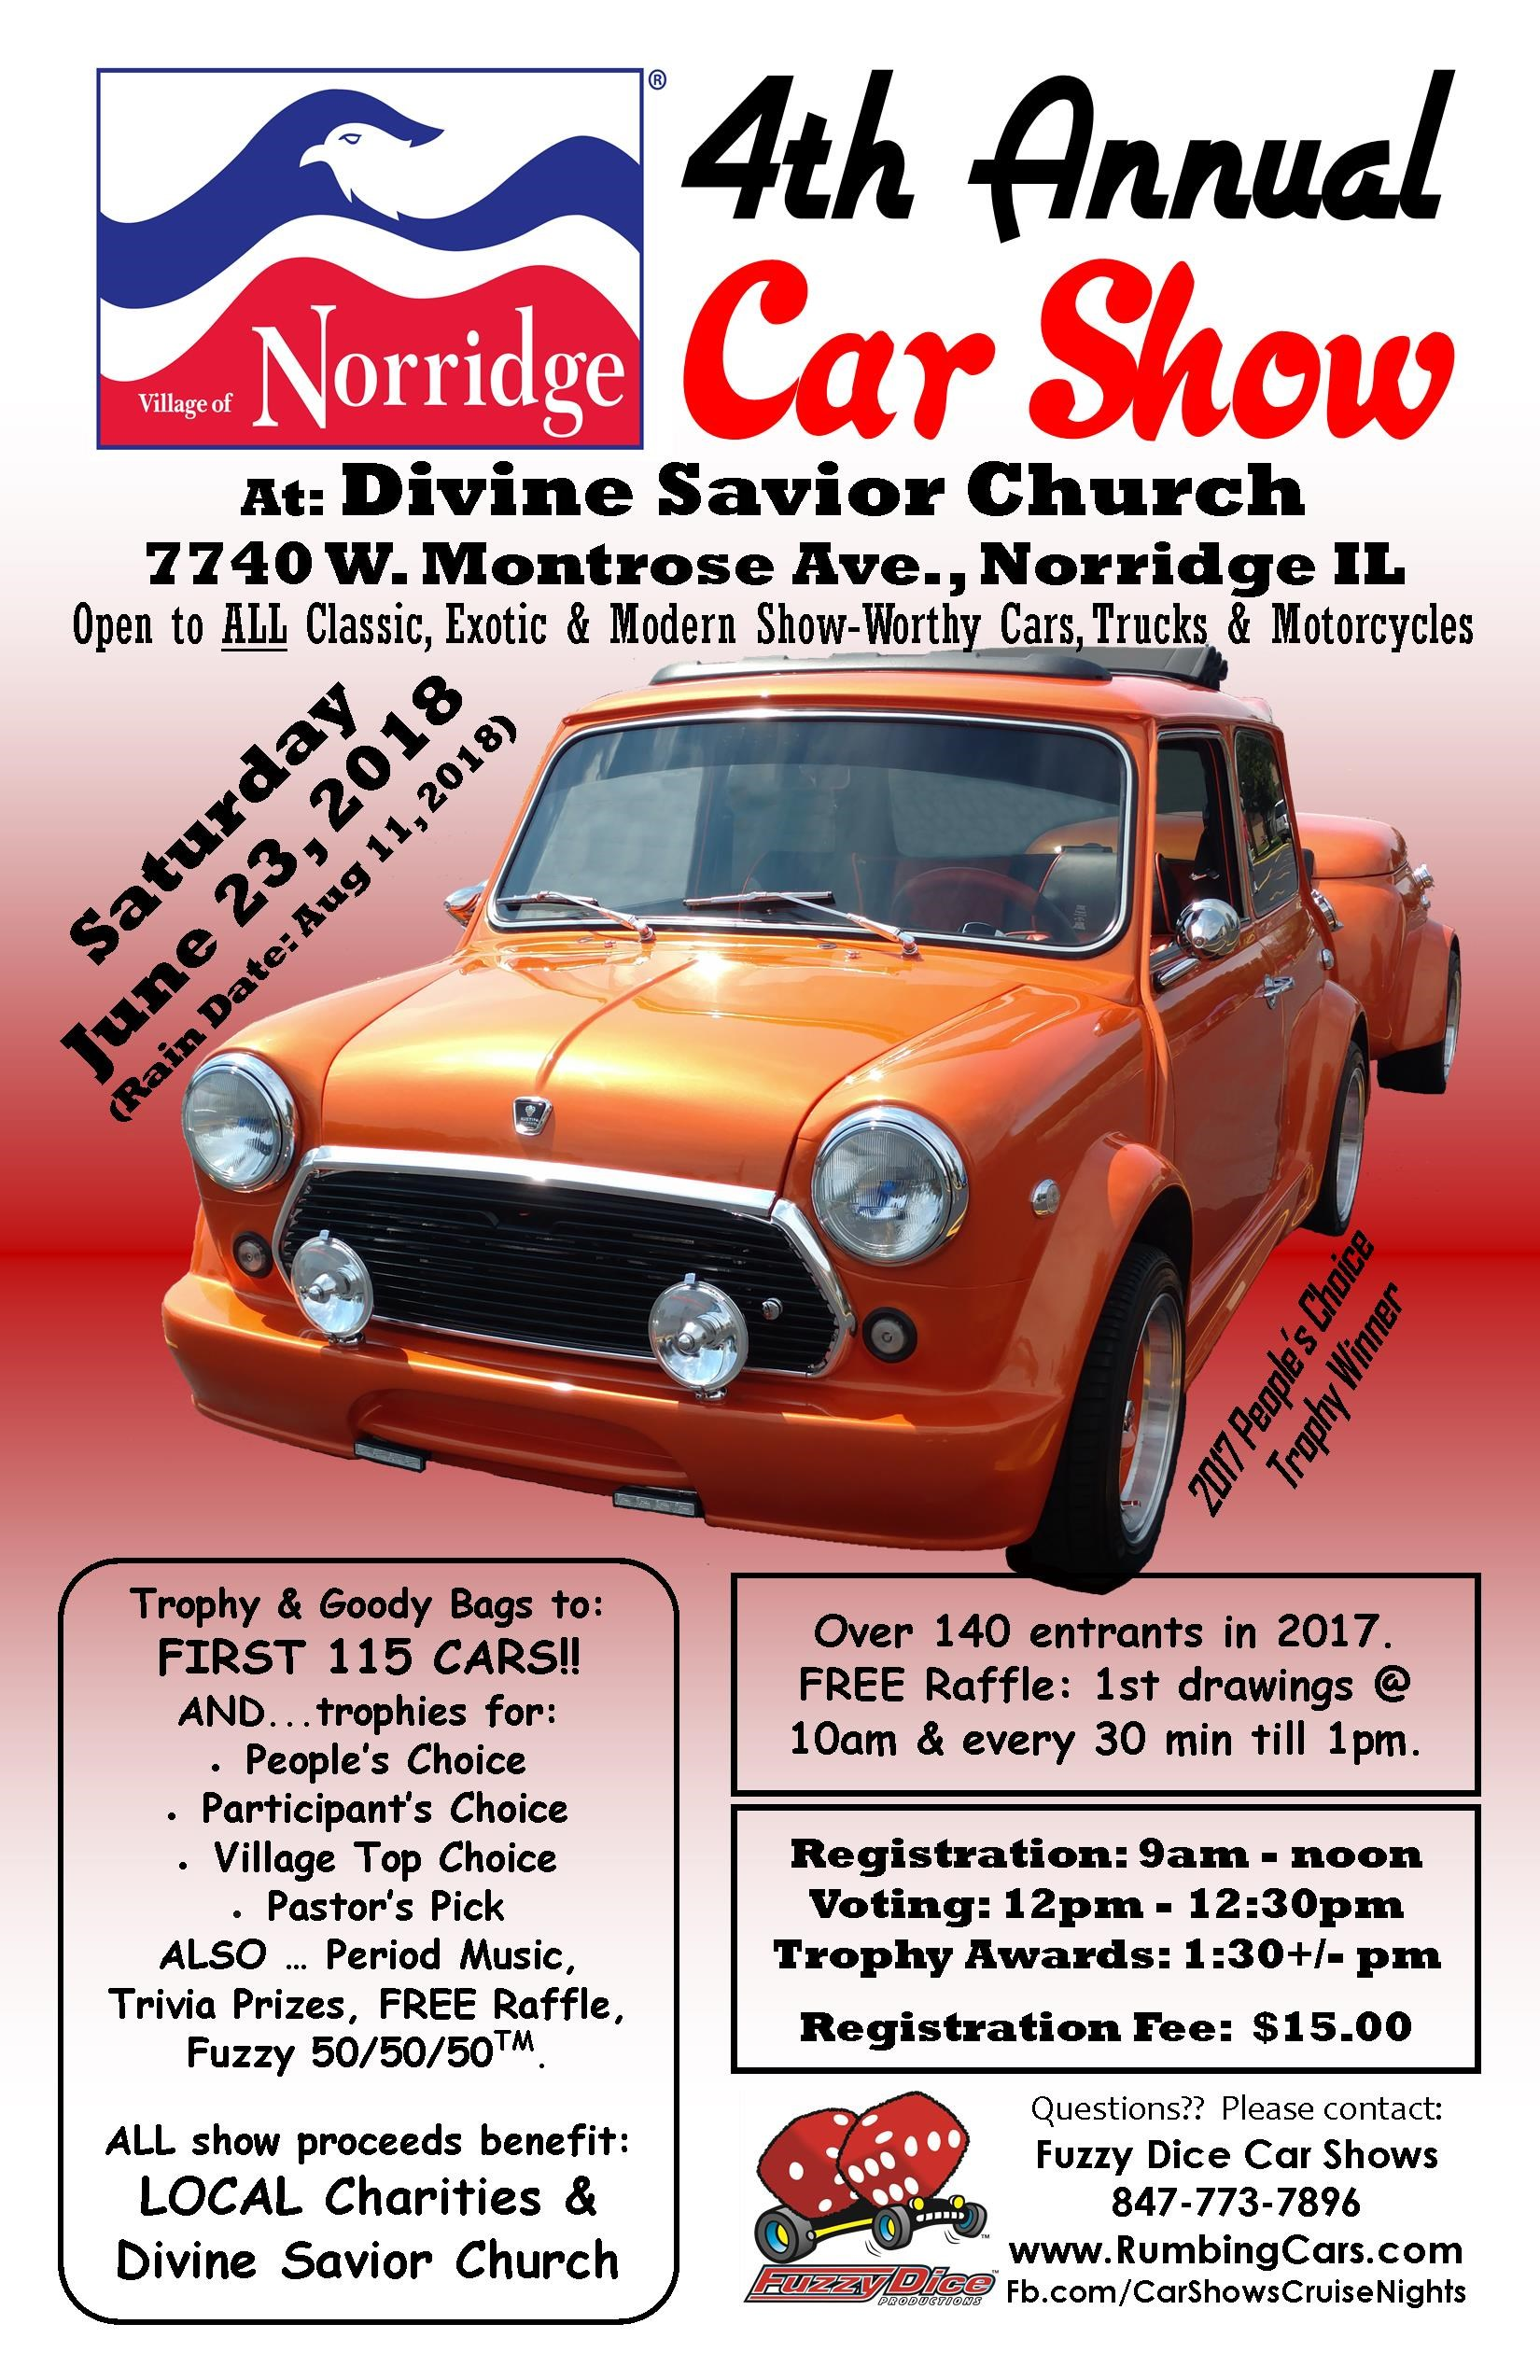 Th Annual Car Show Calendar Month View Village Of Norridge - Car show calendar